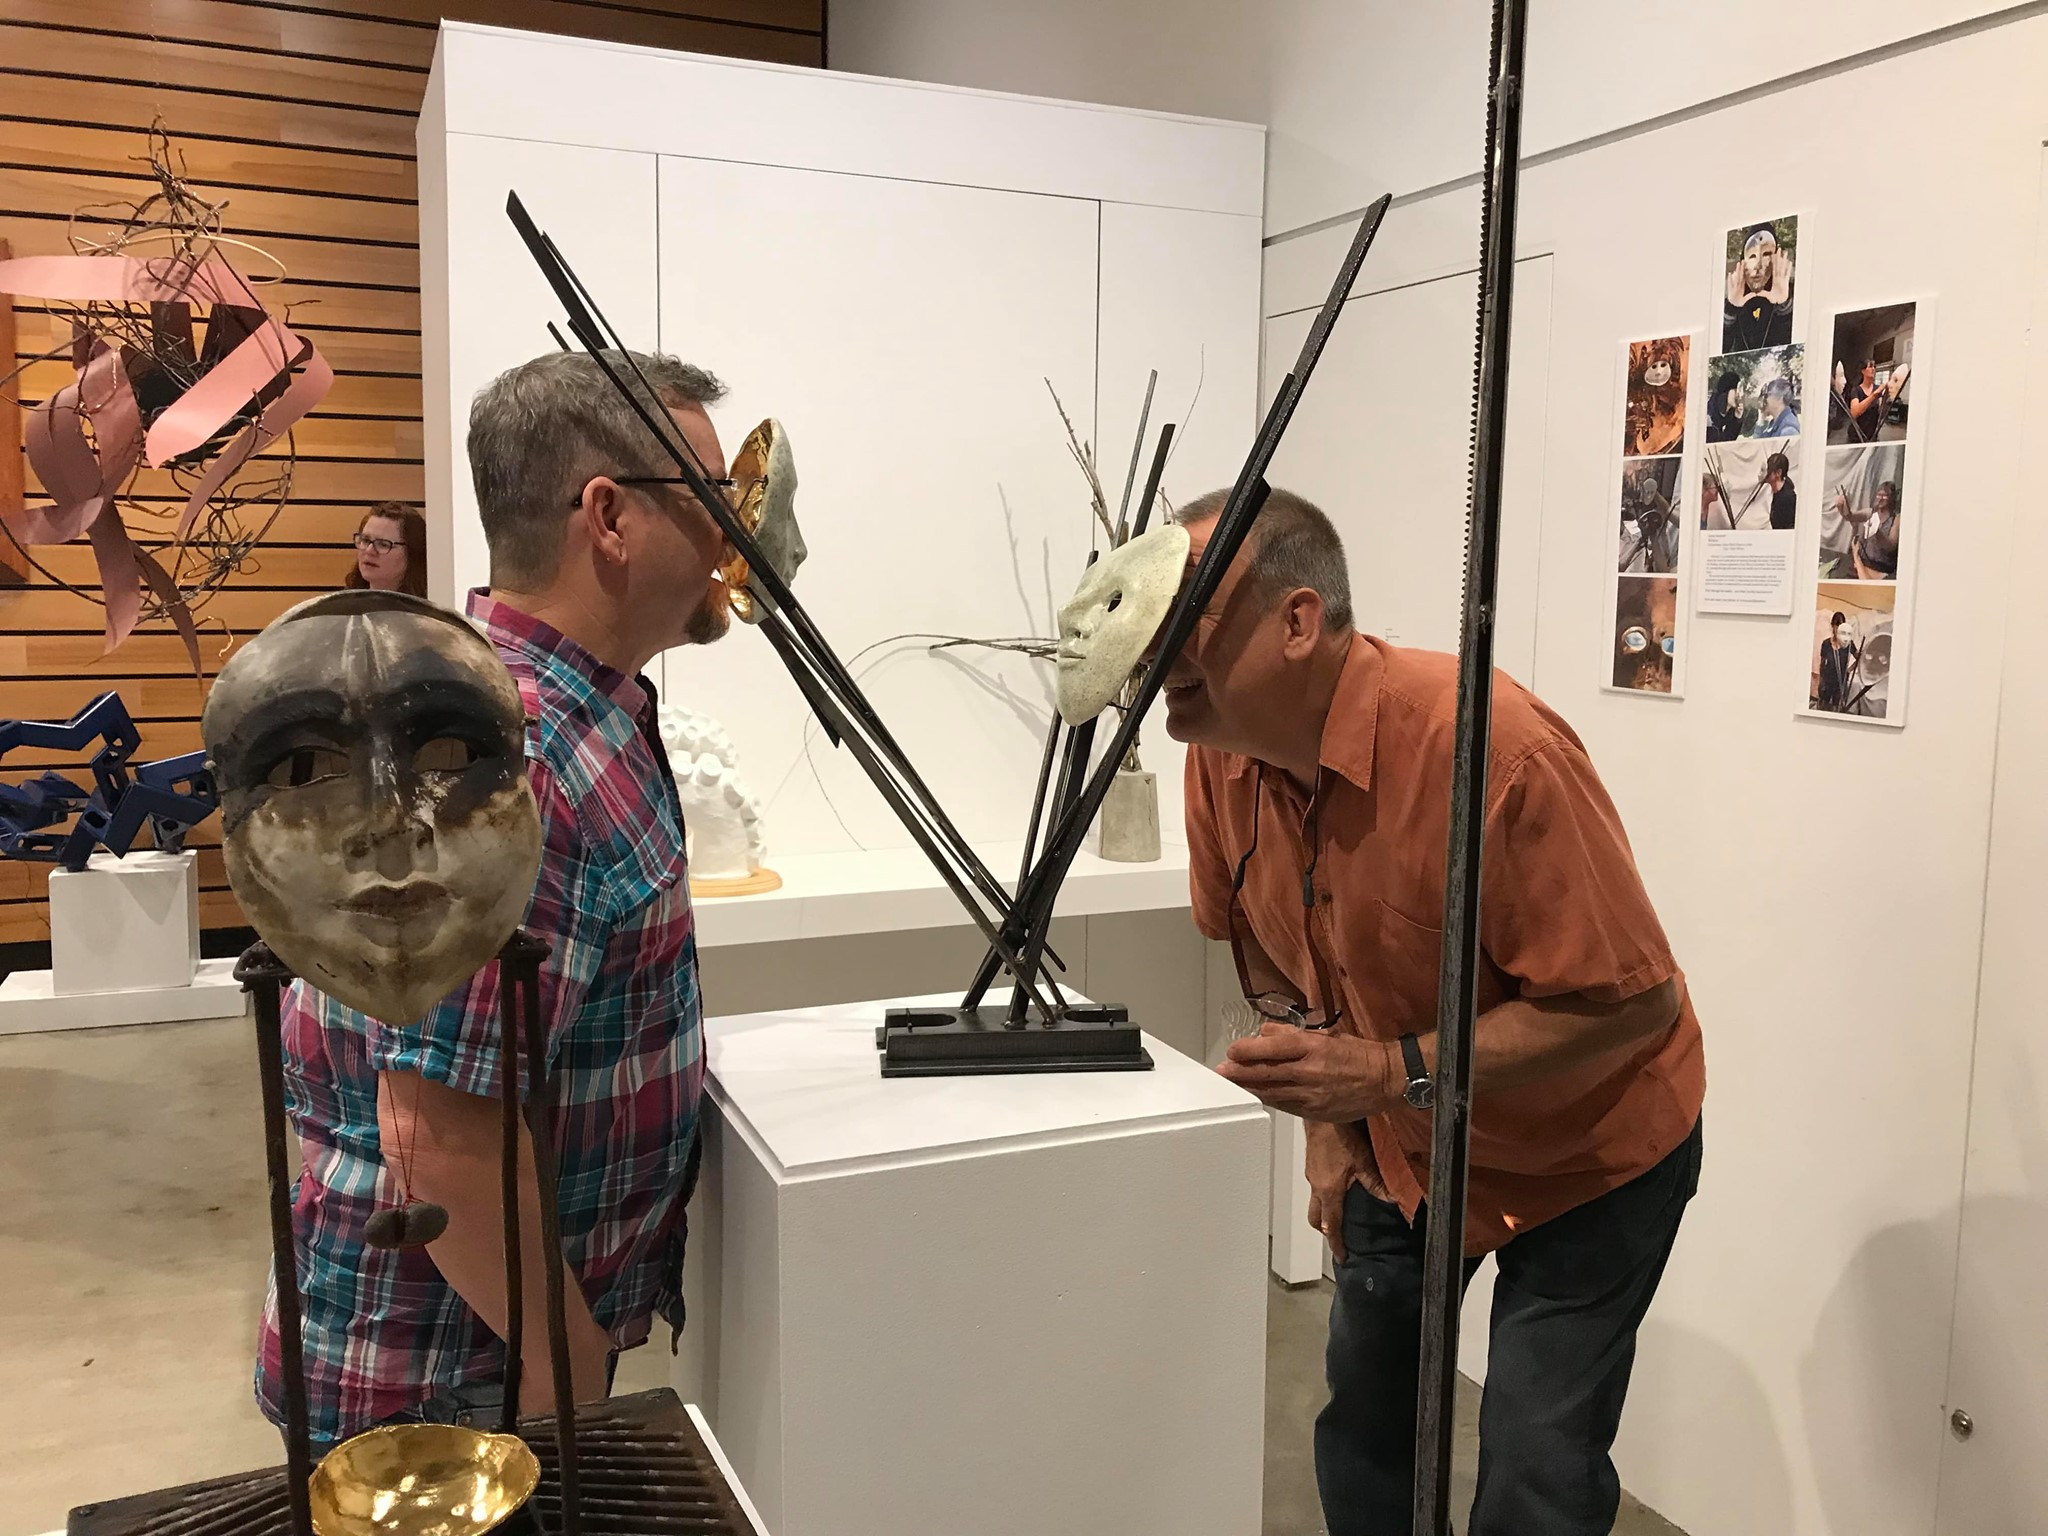 Unmatched Pairs Event - Multnomah Arts Center - Exhibit photo - 2